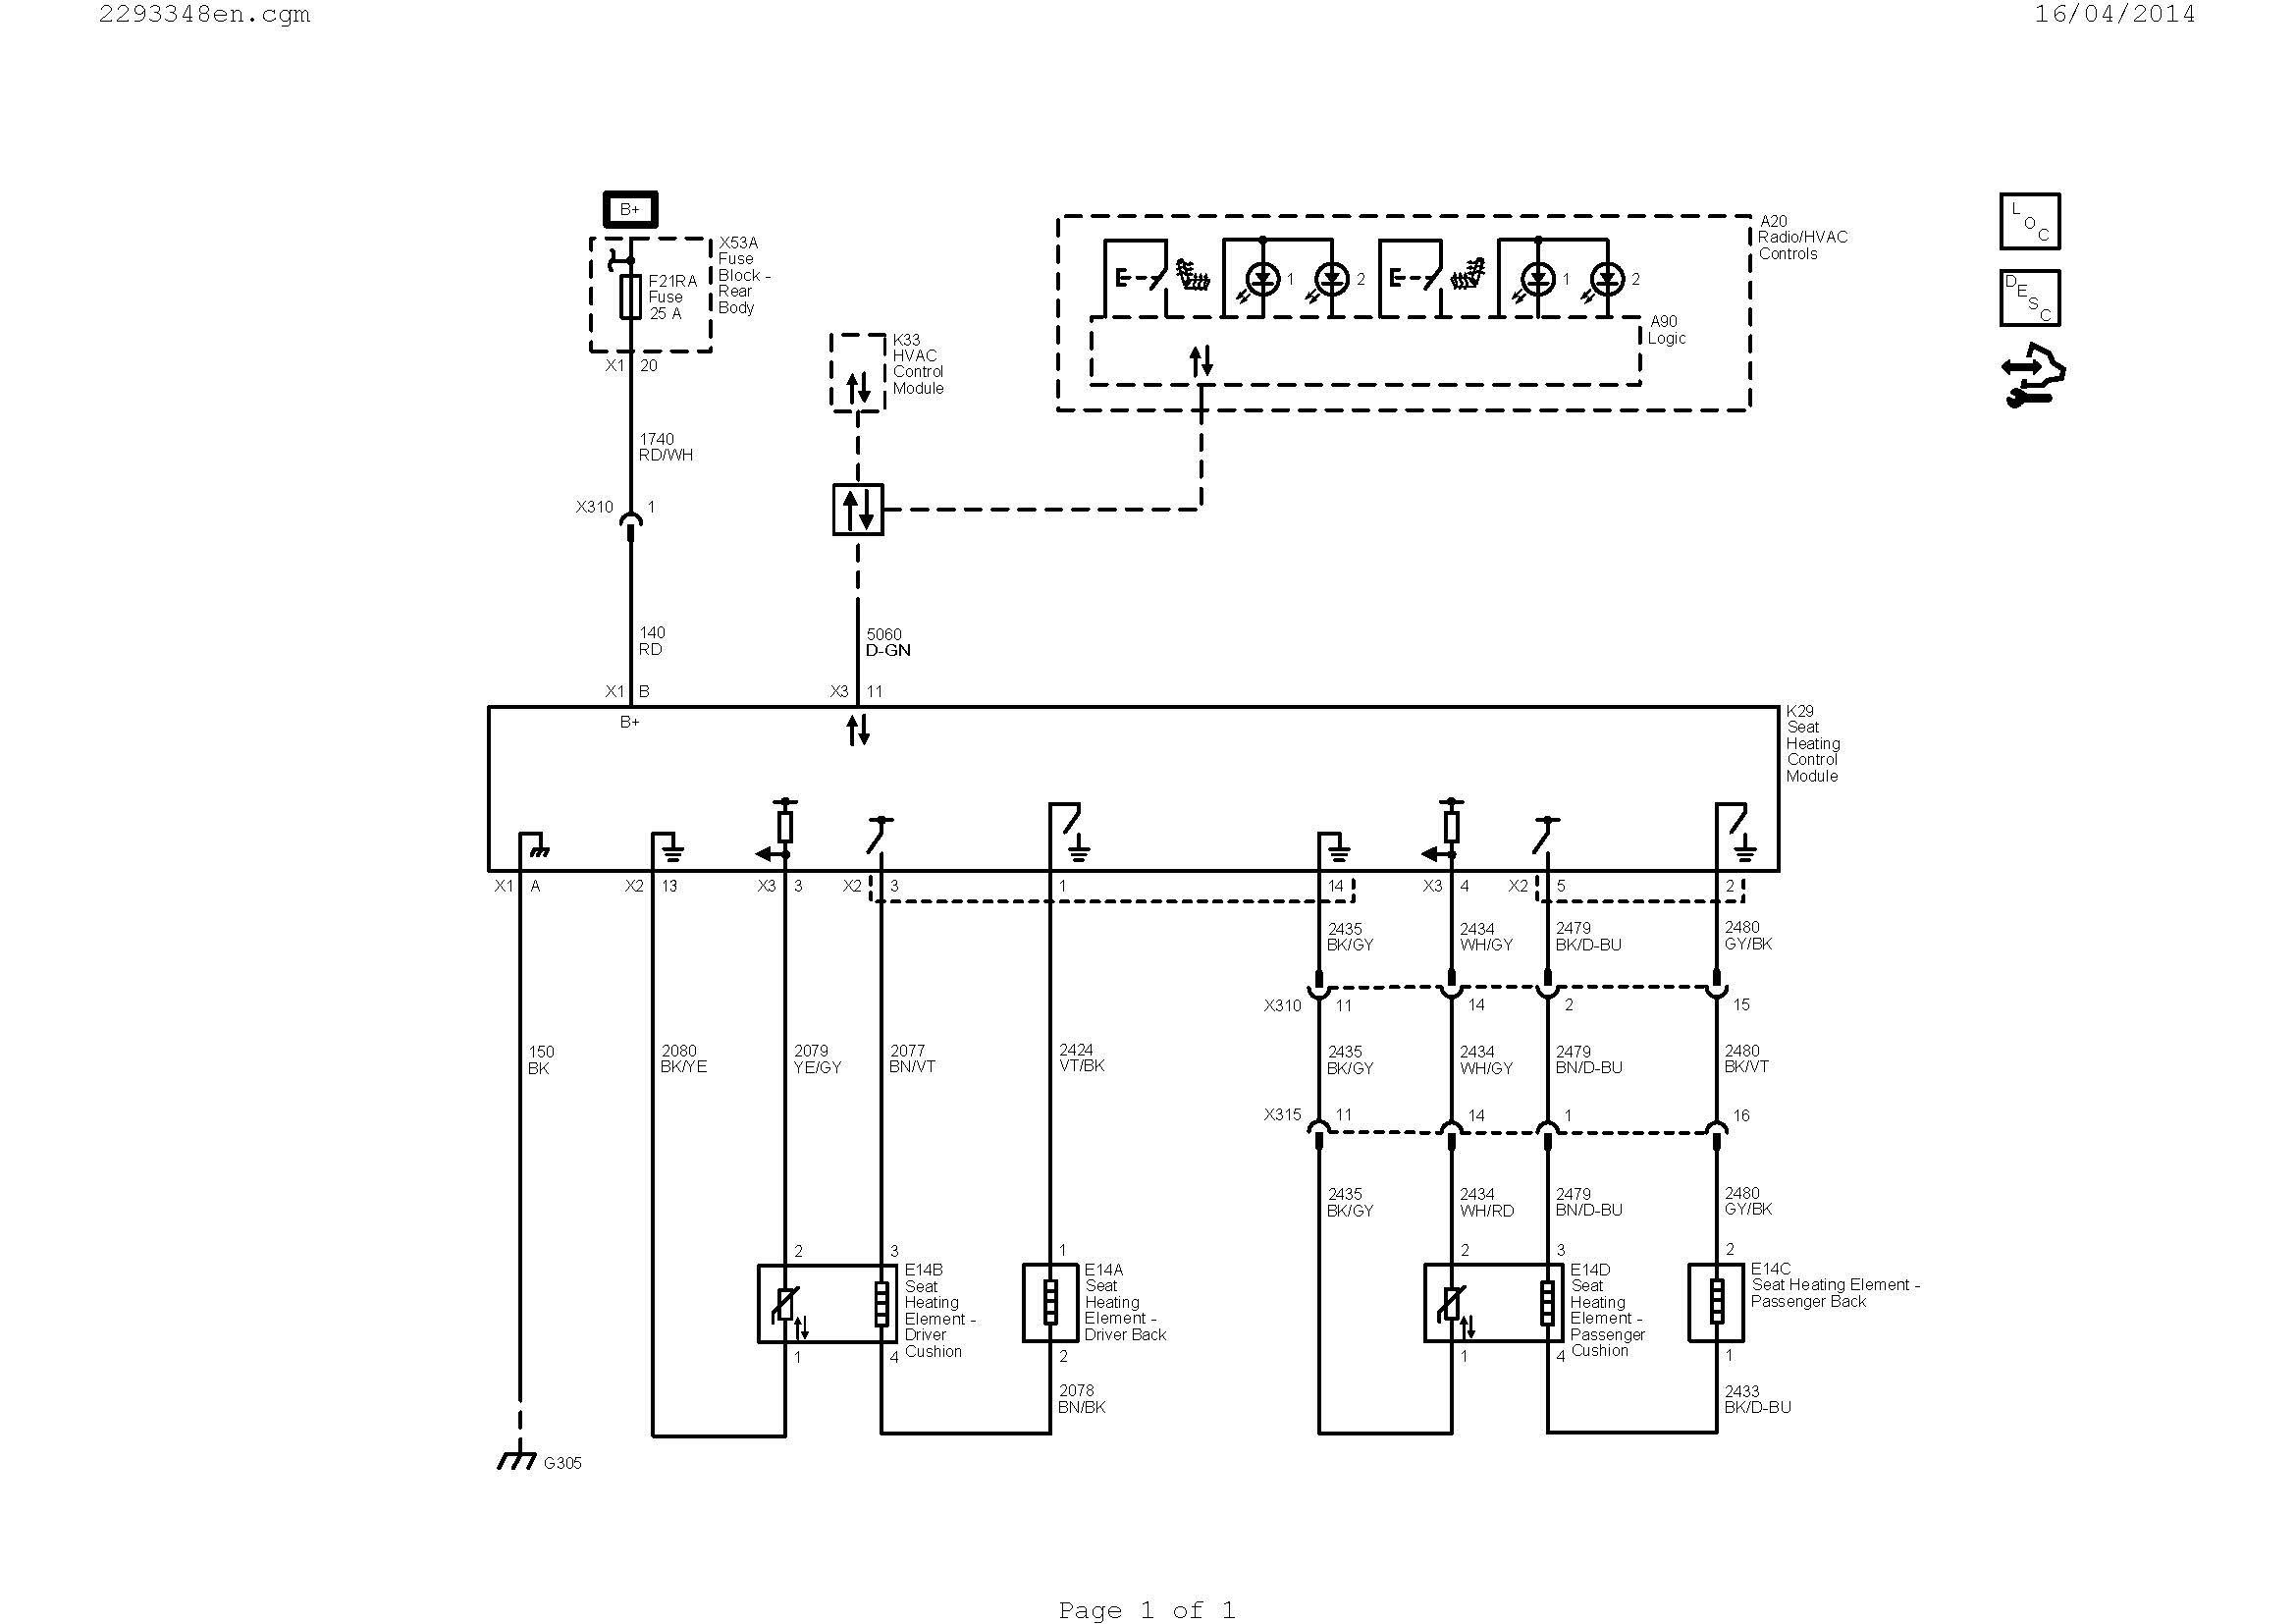 wiring diagram for thermostat to furnace Collection-Nest Wireless thermostat Wiring Diagram Refrence Wiring Diagram Ac Valid Hvac Diagram Best Hvac Diagram 0d 3-o